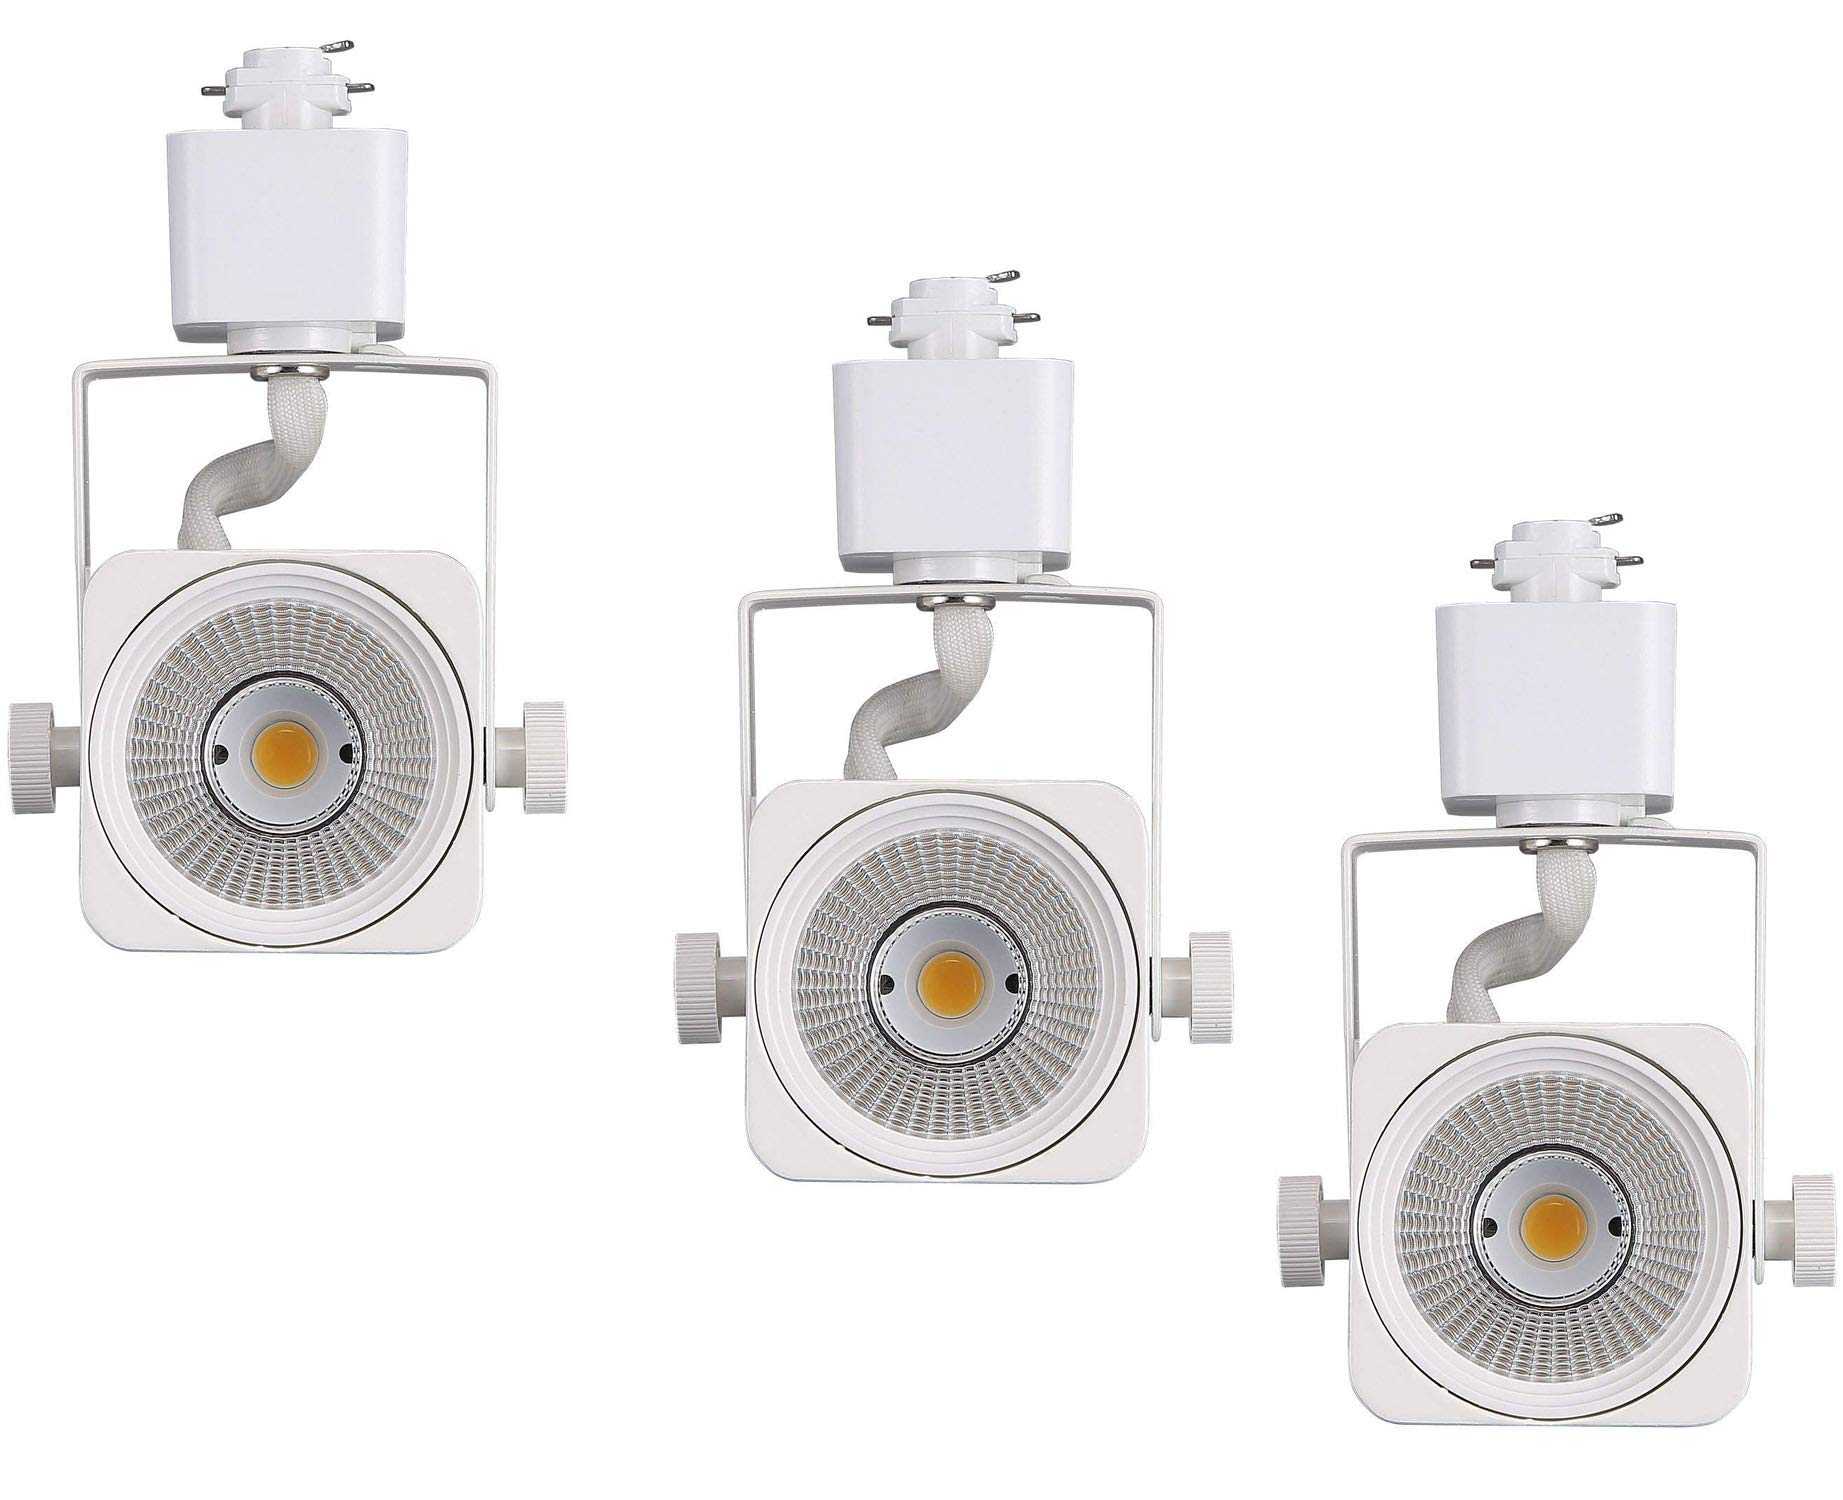 Cloudy Bay LED Track Light Head,CRI90+ Warm White 3000K Dimmable,Adjustable Tilt Angle Track Lighting Fixture,8W 40° Angle for Accent Retail,White Finish,Halo Type- 3 Pack